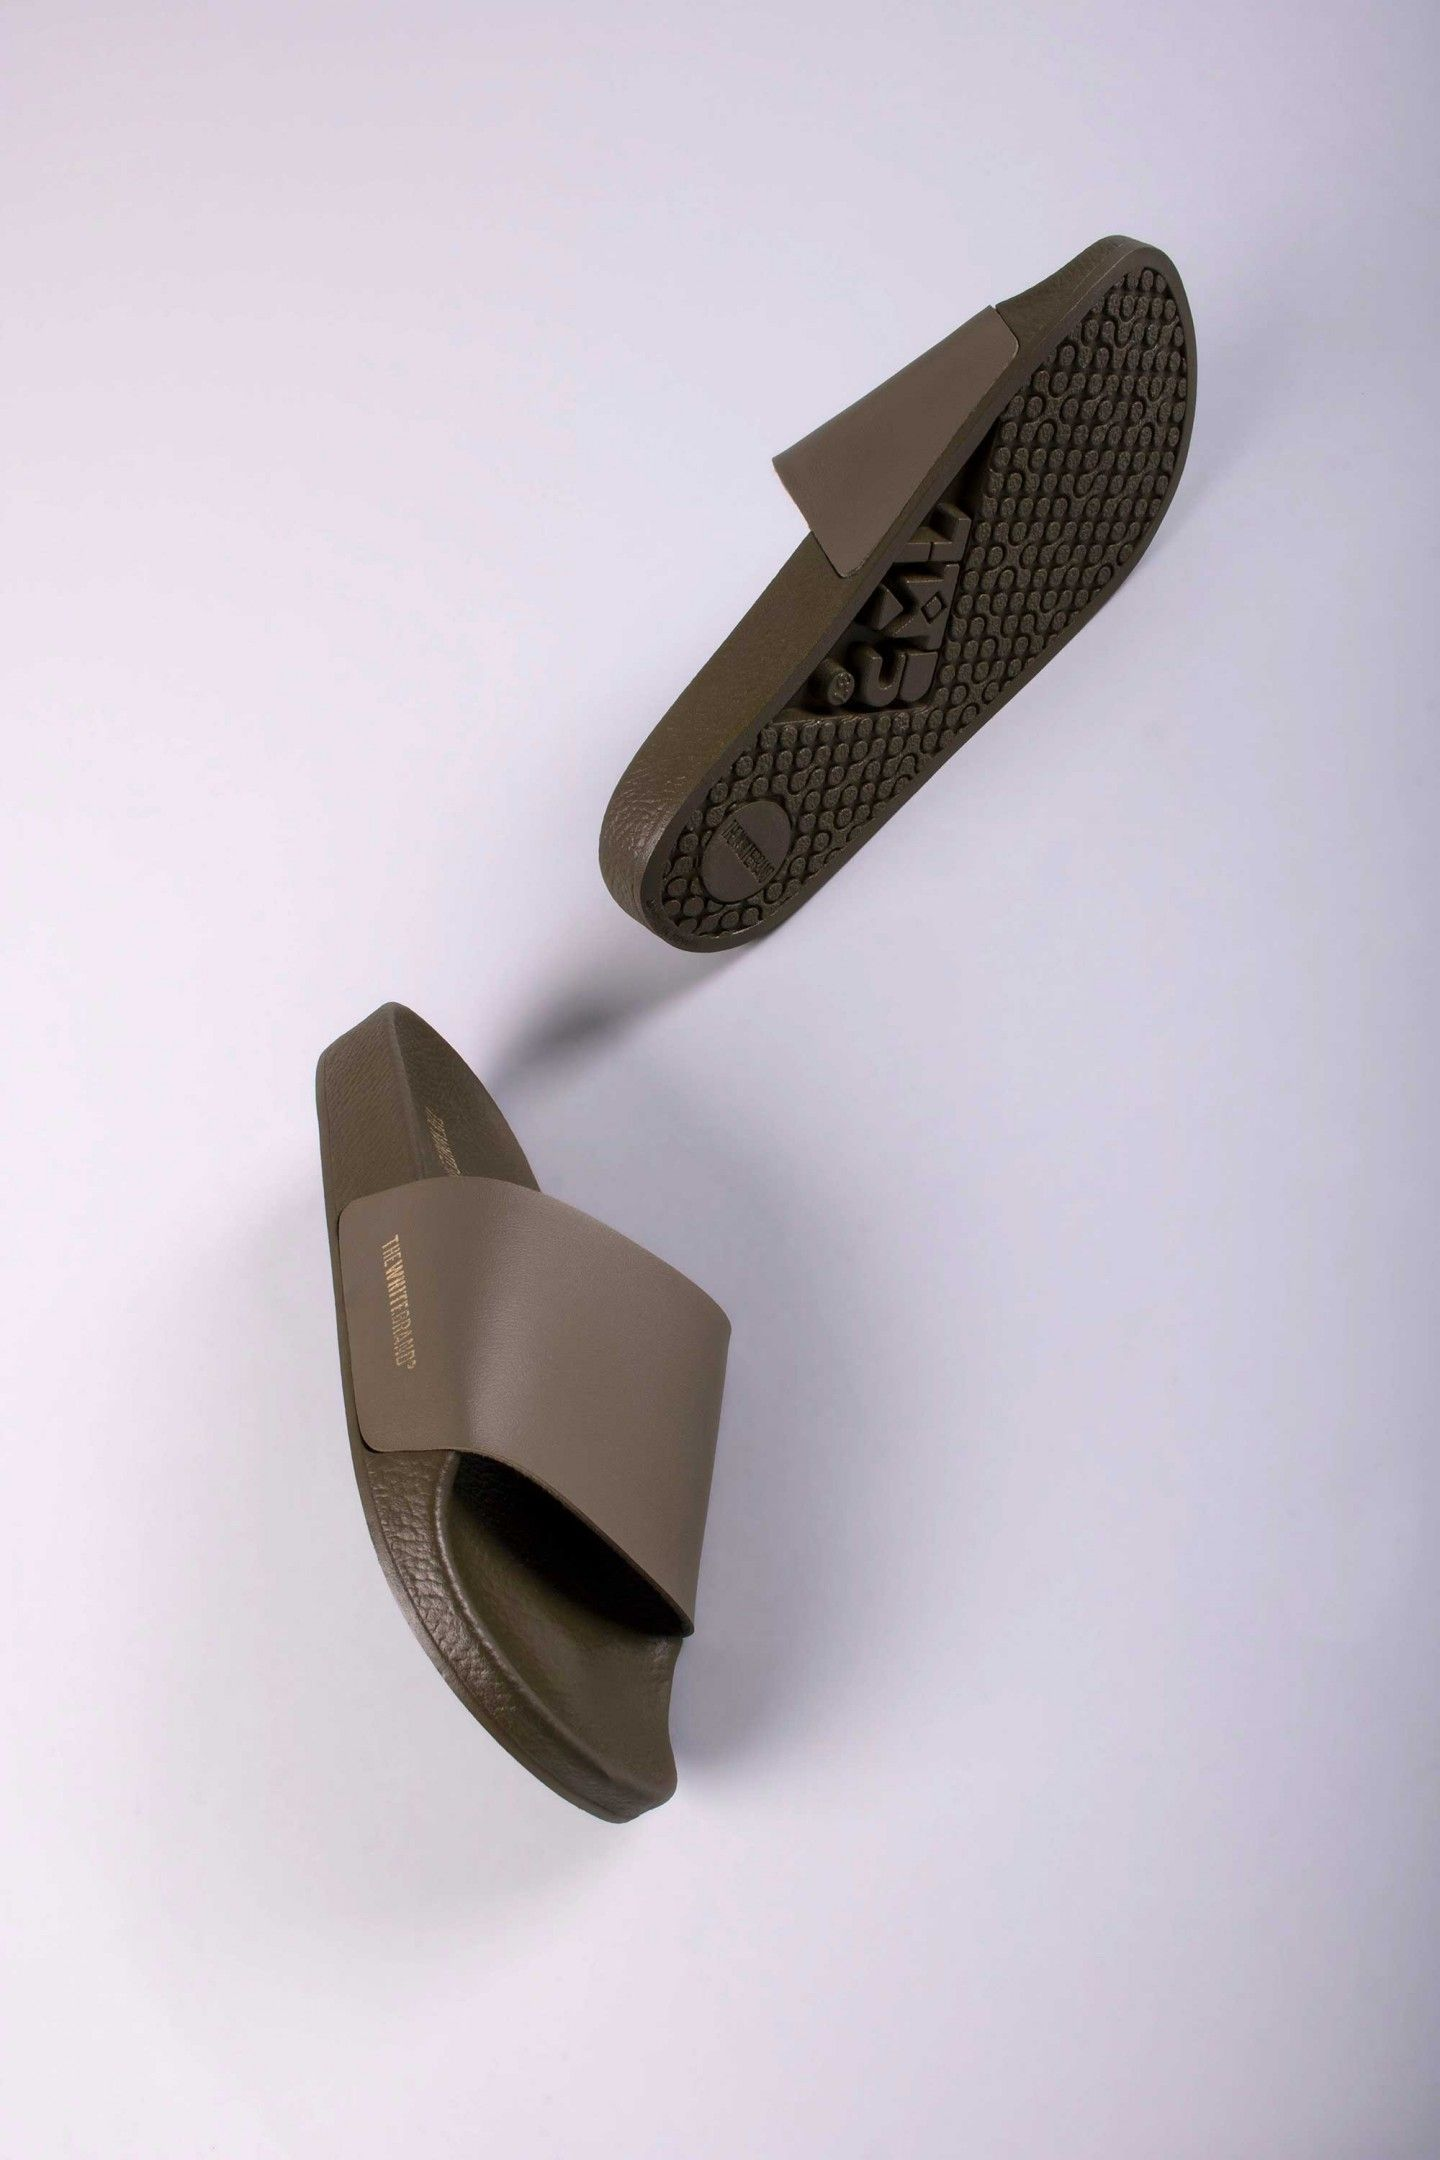 9cbe41c2d MINIMAL ARMY - TheWhiteBrand SS 18 New Collection. Women s flat slide  sandal in army